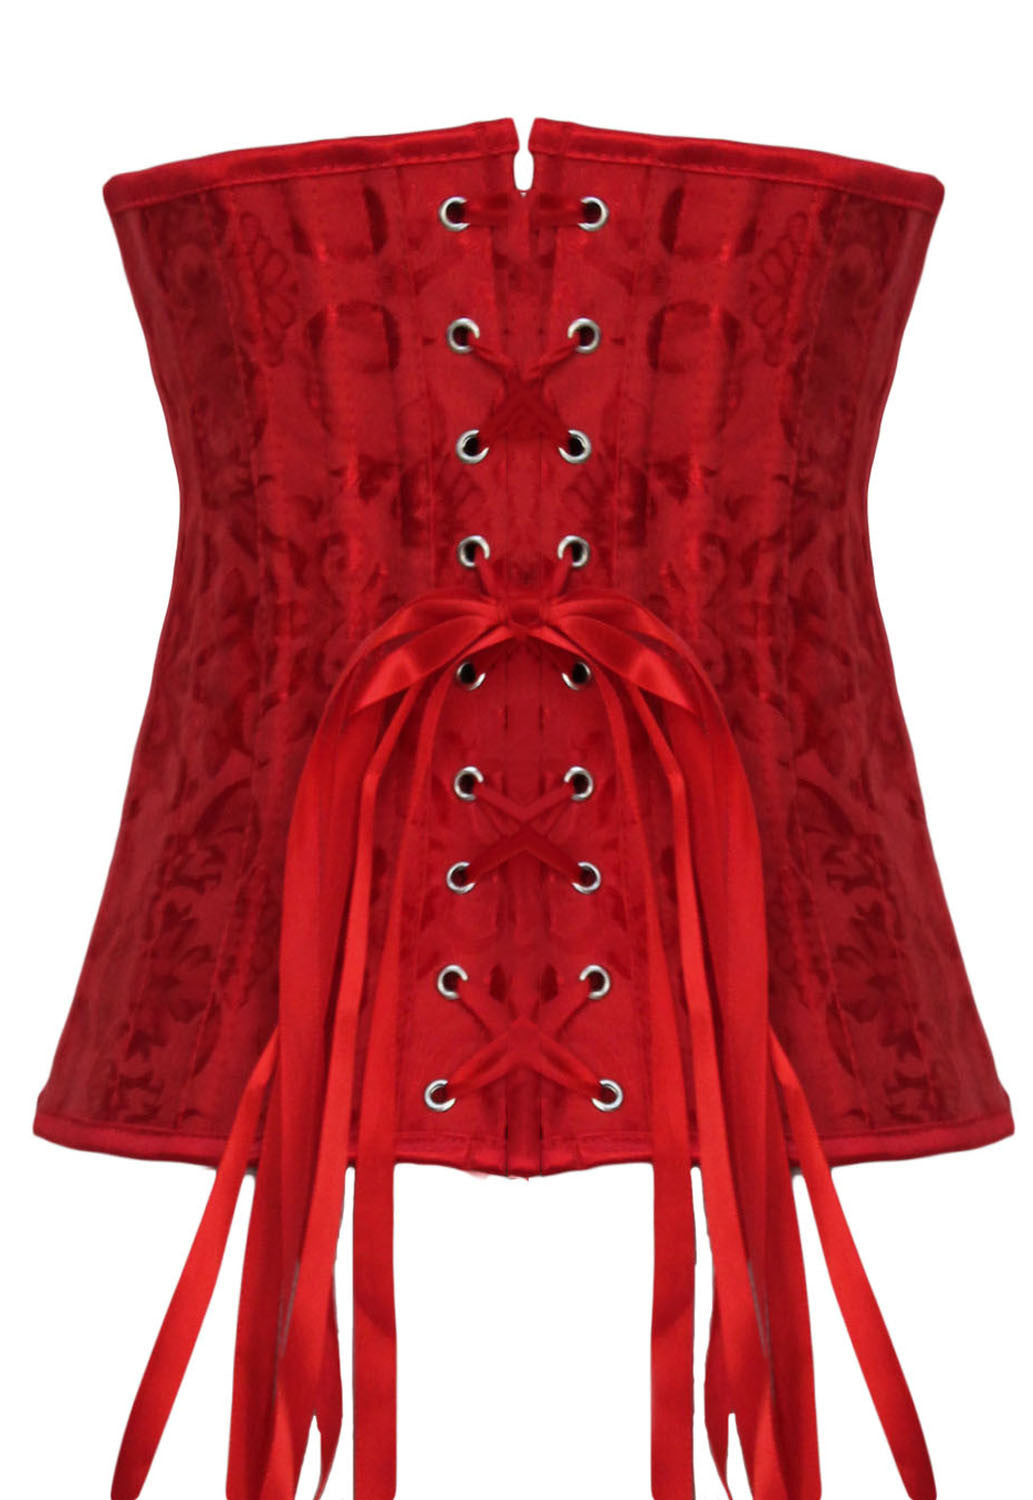 Red Jacquard Underbust Waist Trainer Corset with 24 Bones - IBL Fashion - 2